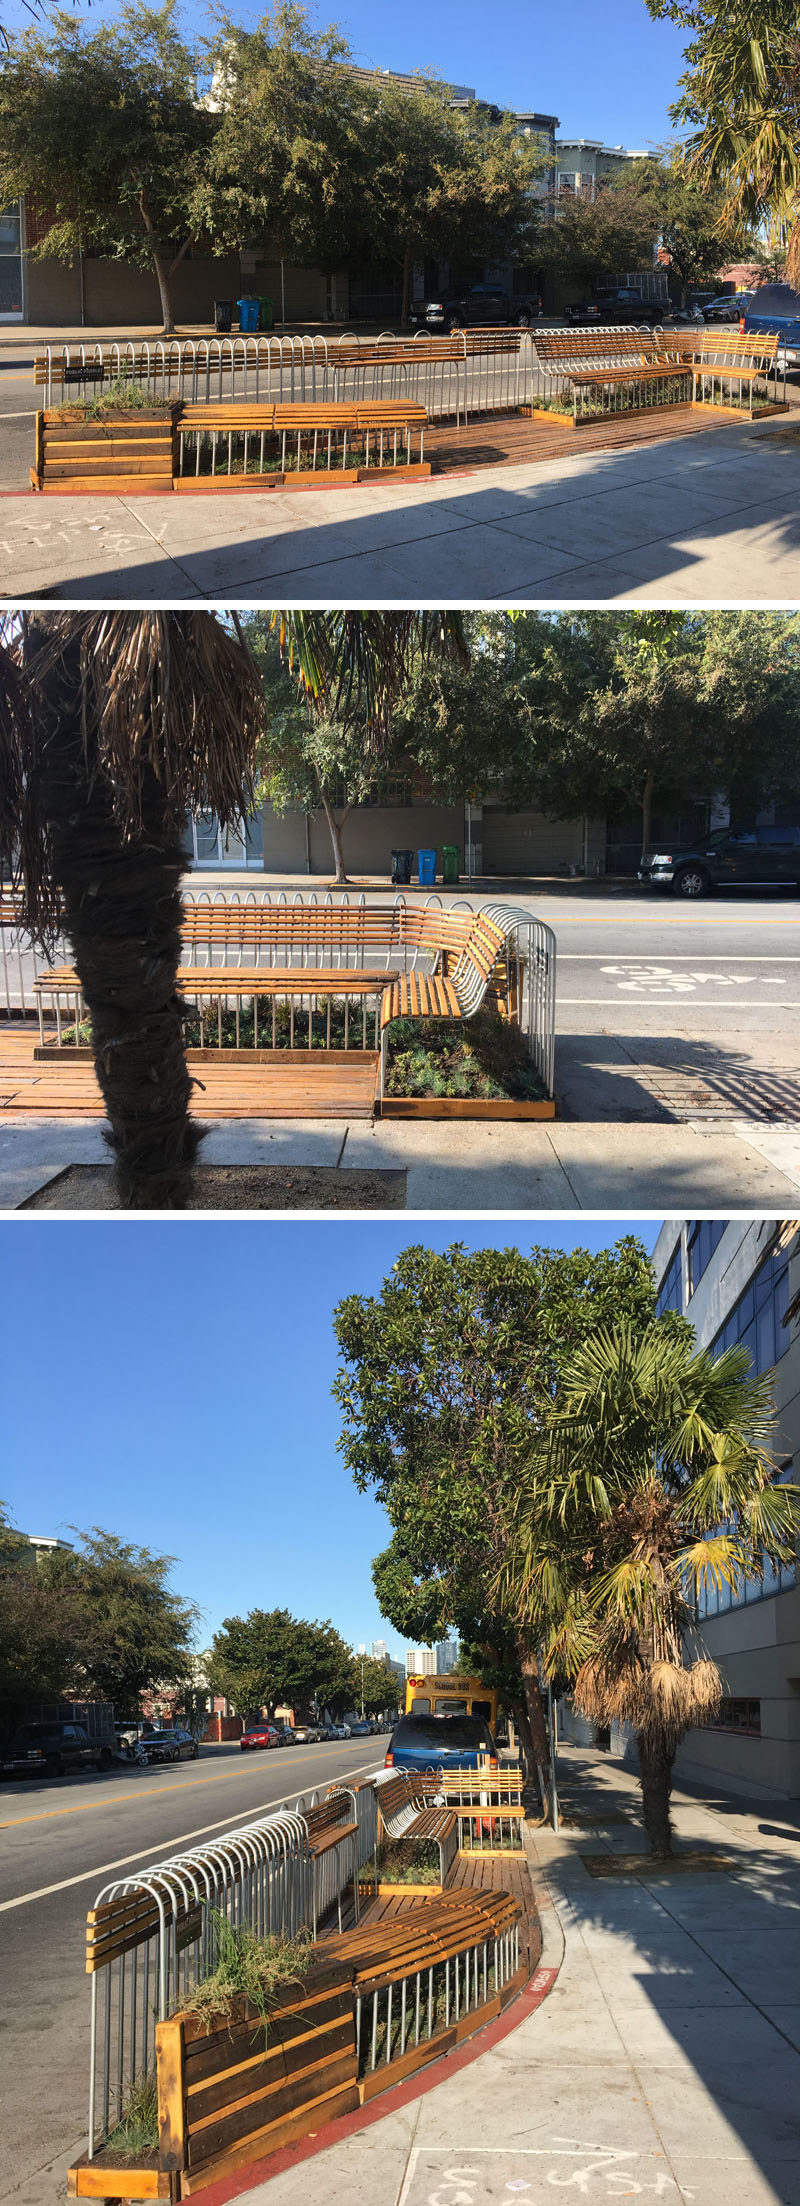 Youth Art Exchange (YAX) youth architects from the YAX Architecture Firm, lead by faculty architect Kali Gordon and John O'Connell High School Construction Instructor Chris Wood, developed an innovated parklet design utilizing reclaimed cedar and conduit pipes. #Parklet #Landscaping #Design